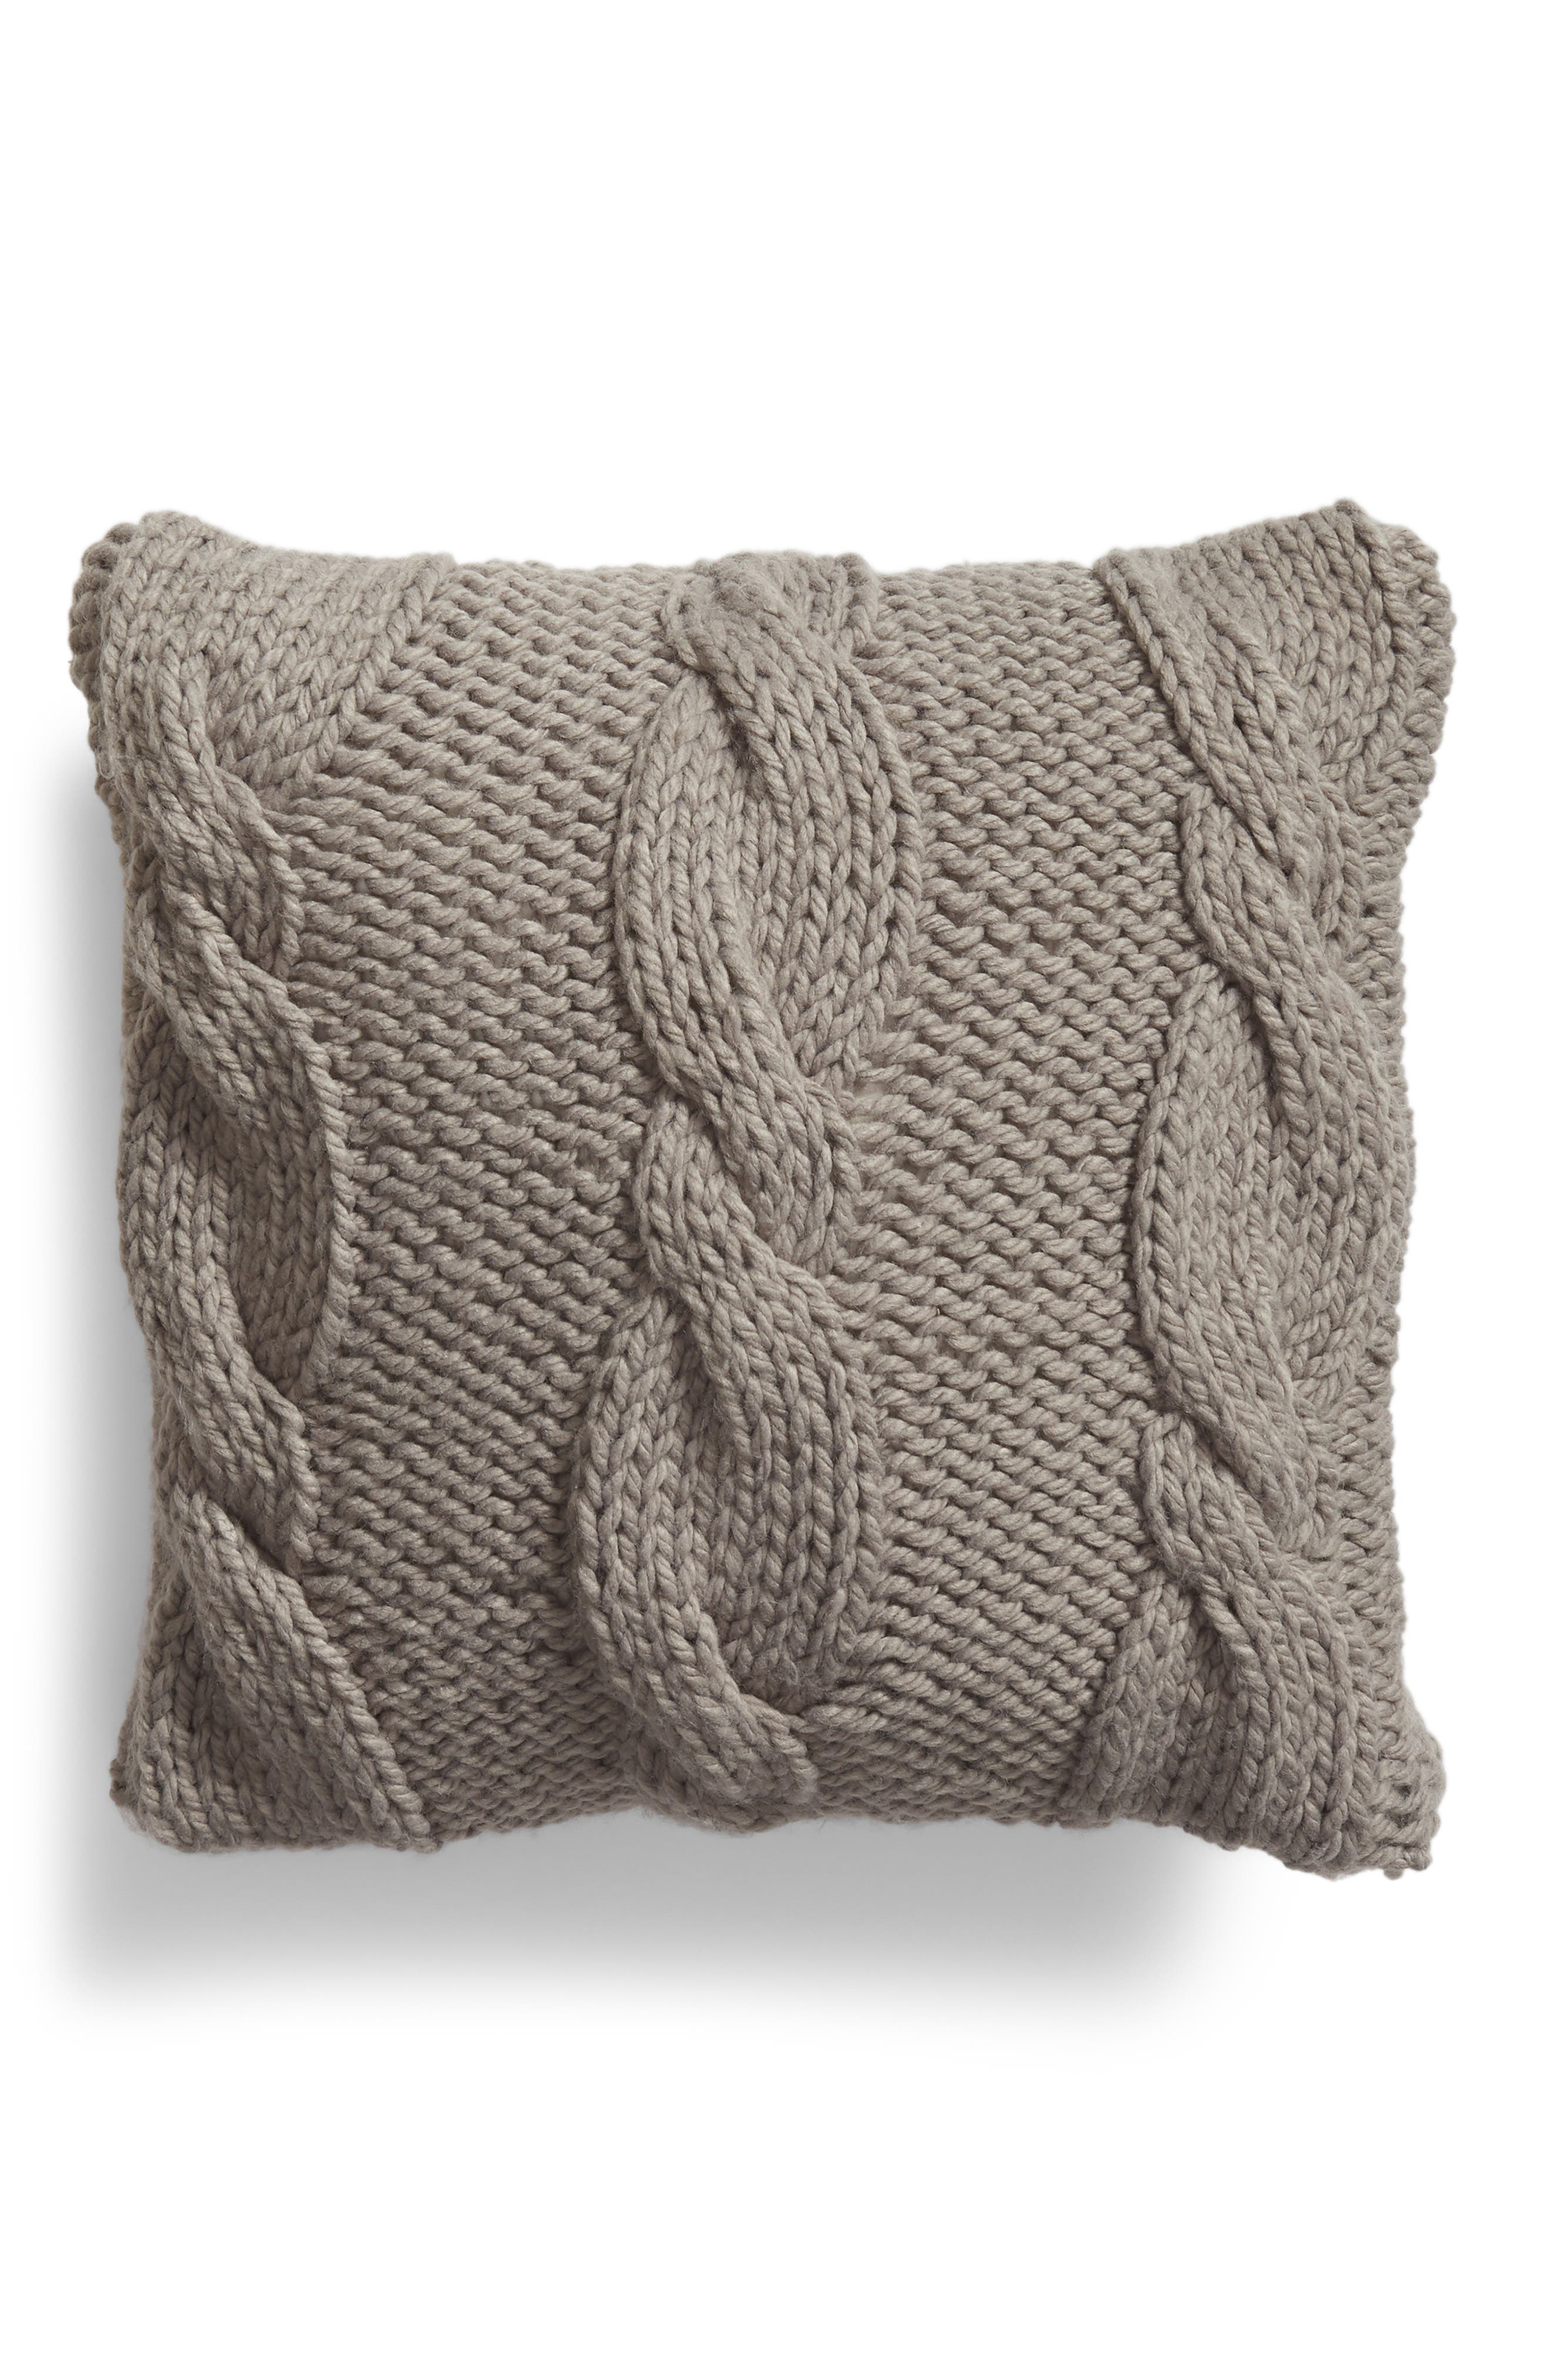 NORDSTROM AT HOME, Cable Knit Accent Pillow, Main thumbnail 1, color, GREY FROST